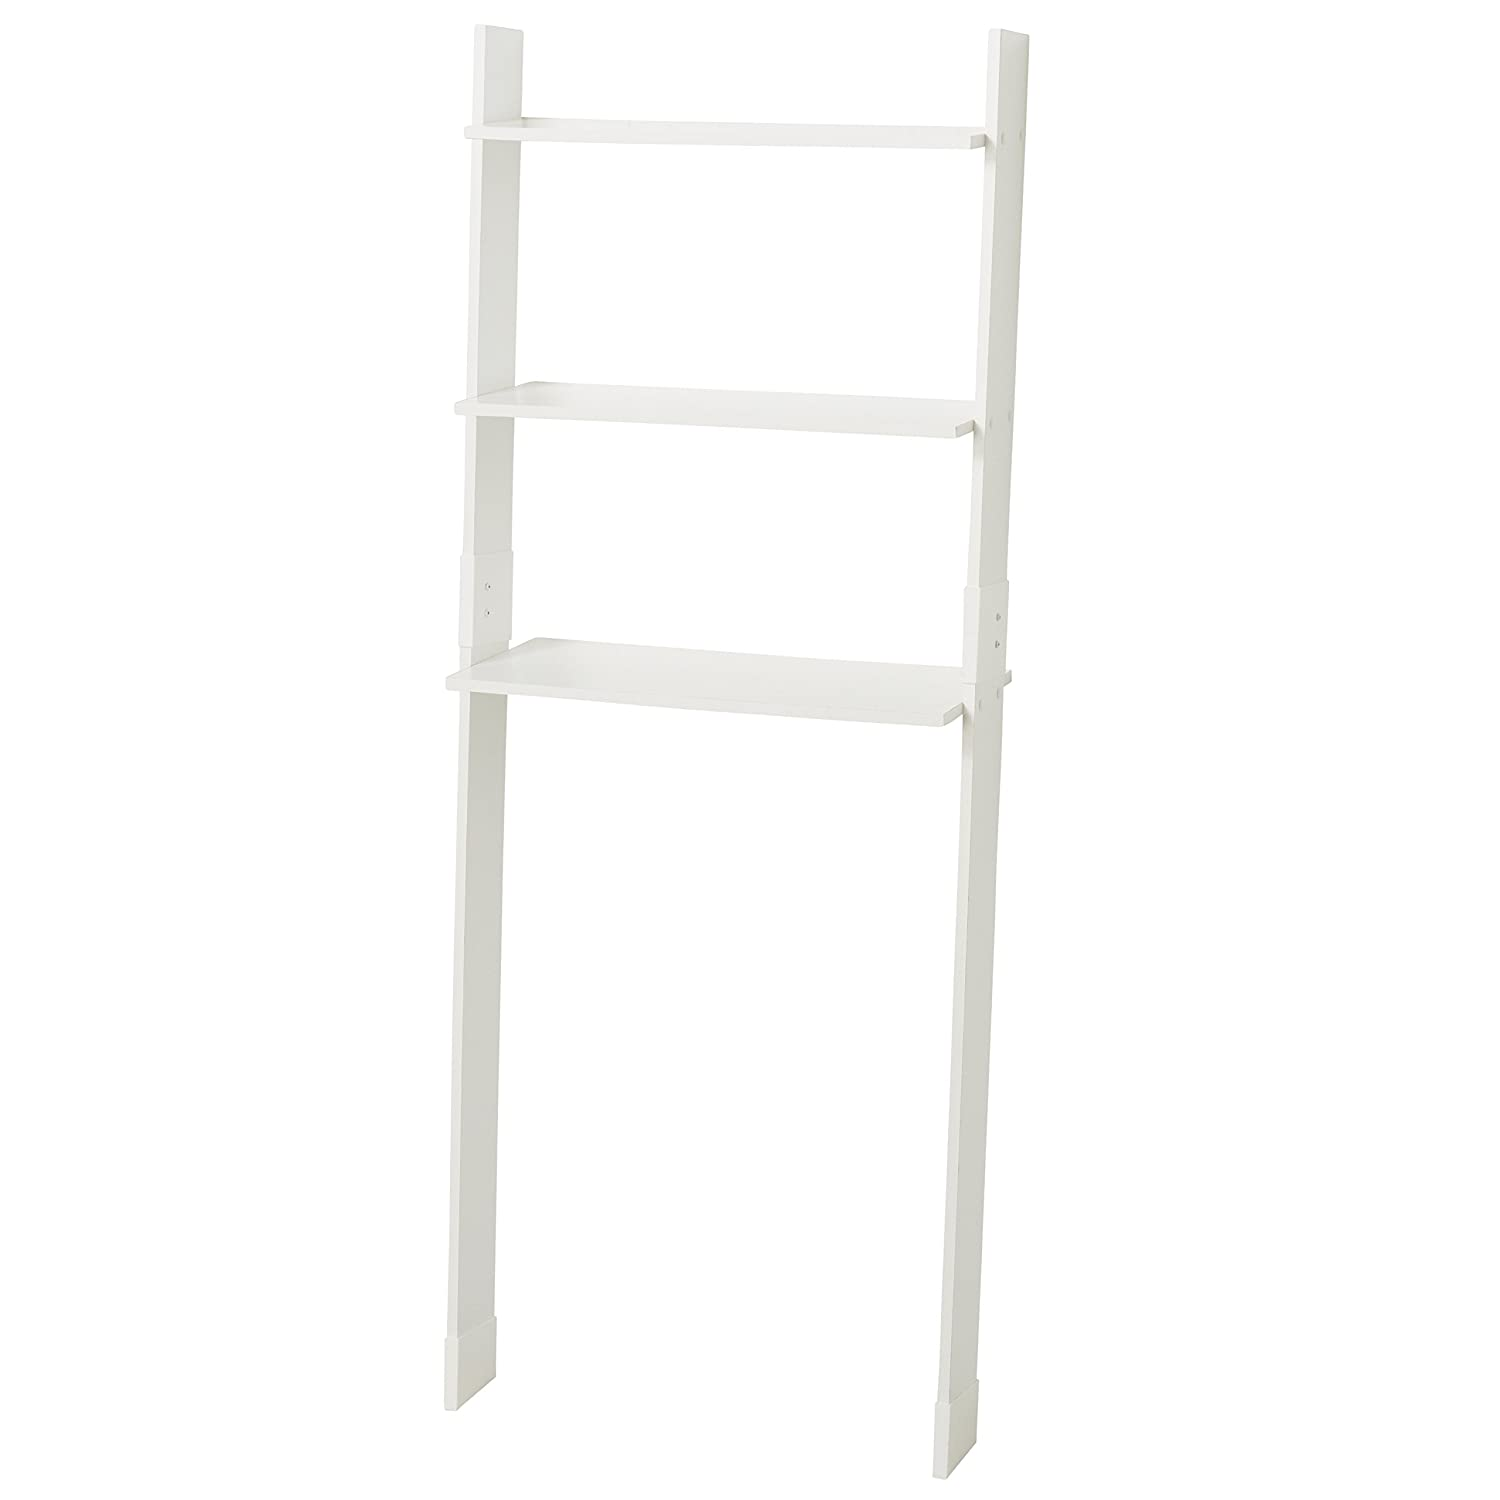 Zenna Home 9431W, Leaning Wood Ladder-Style Bathroom Spacesaver, White